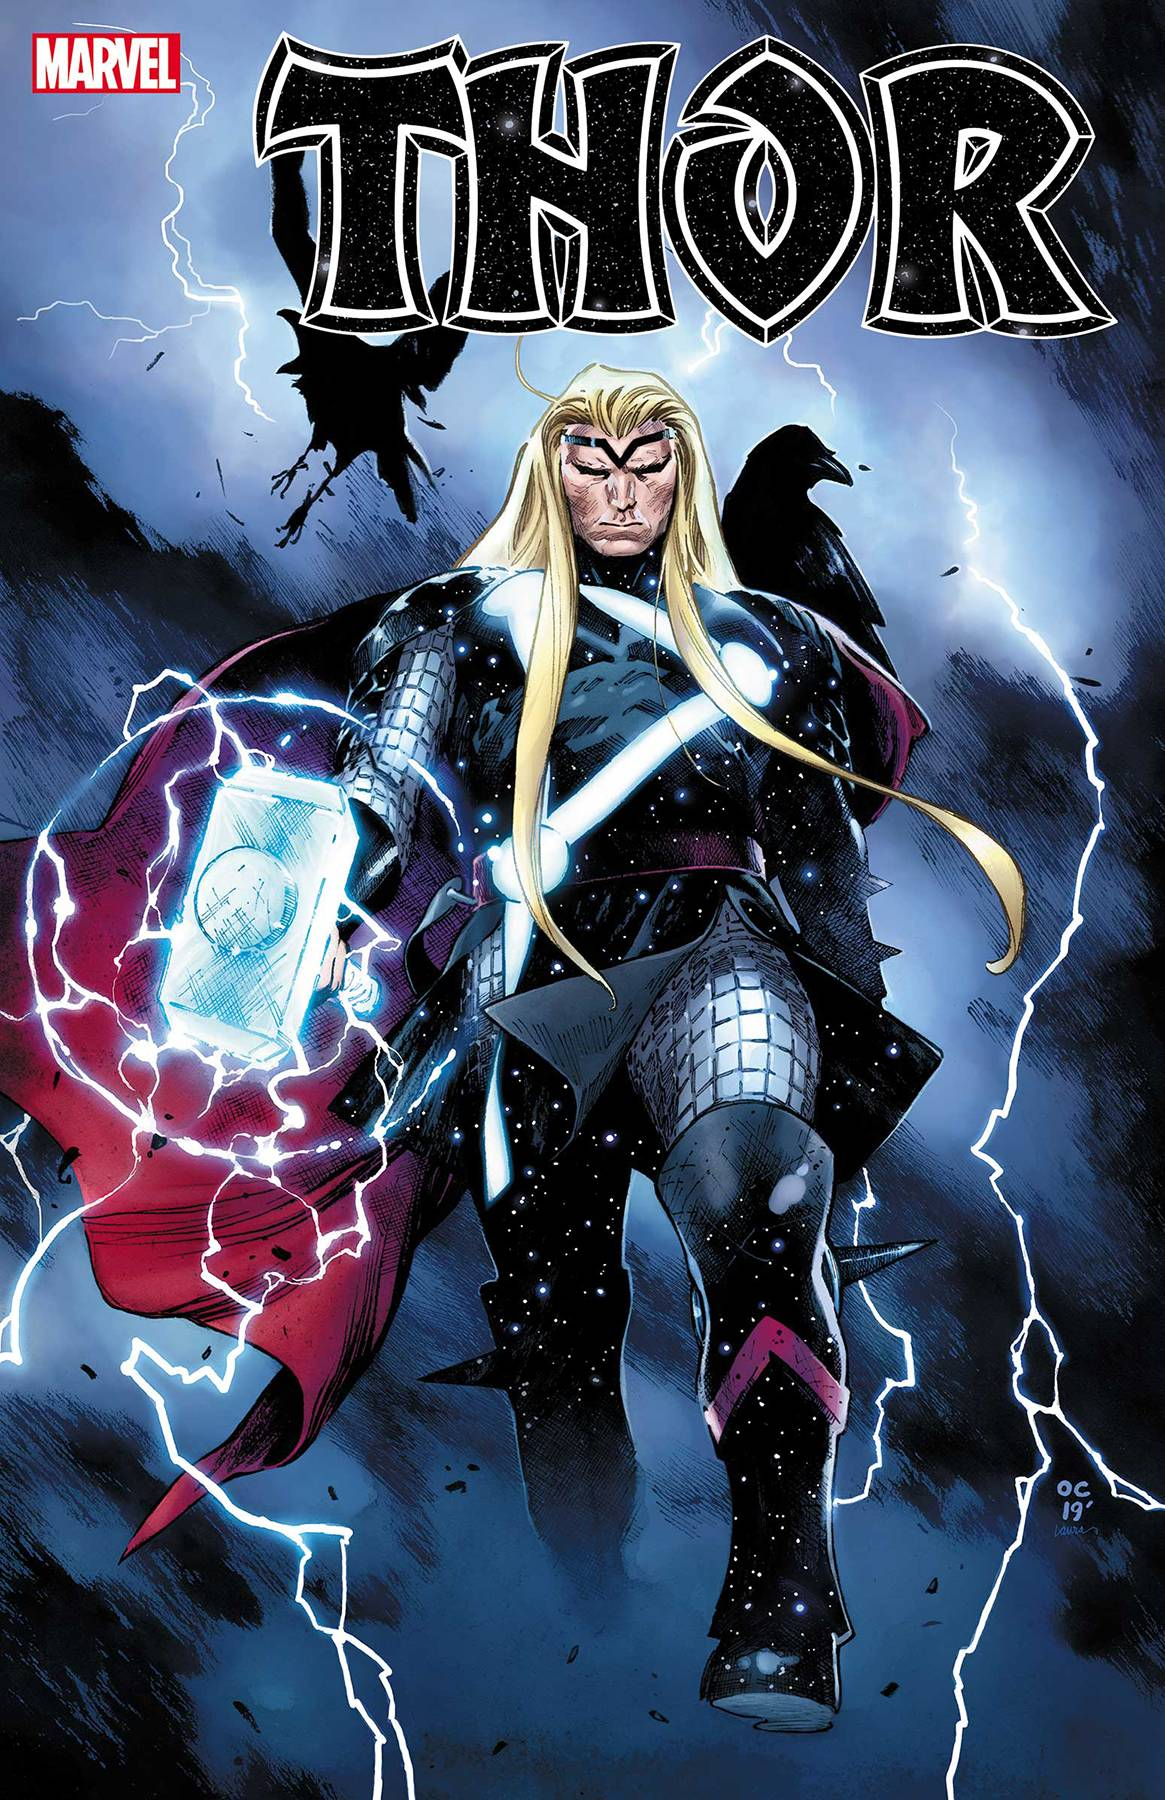 THOR #1